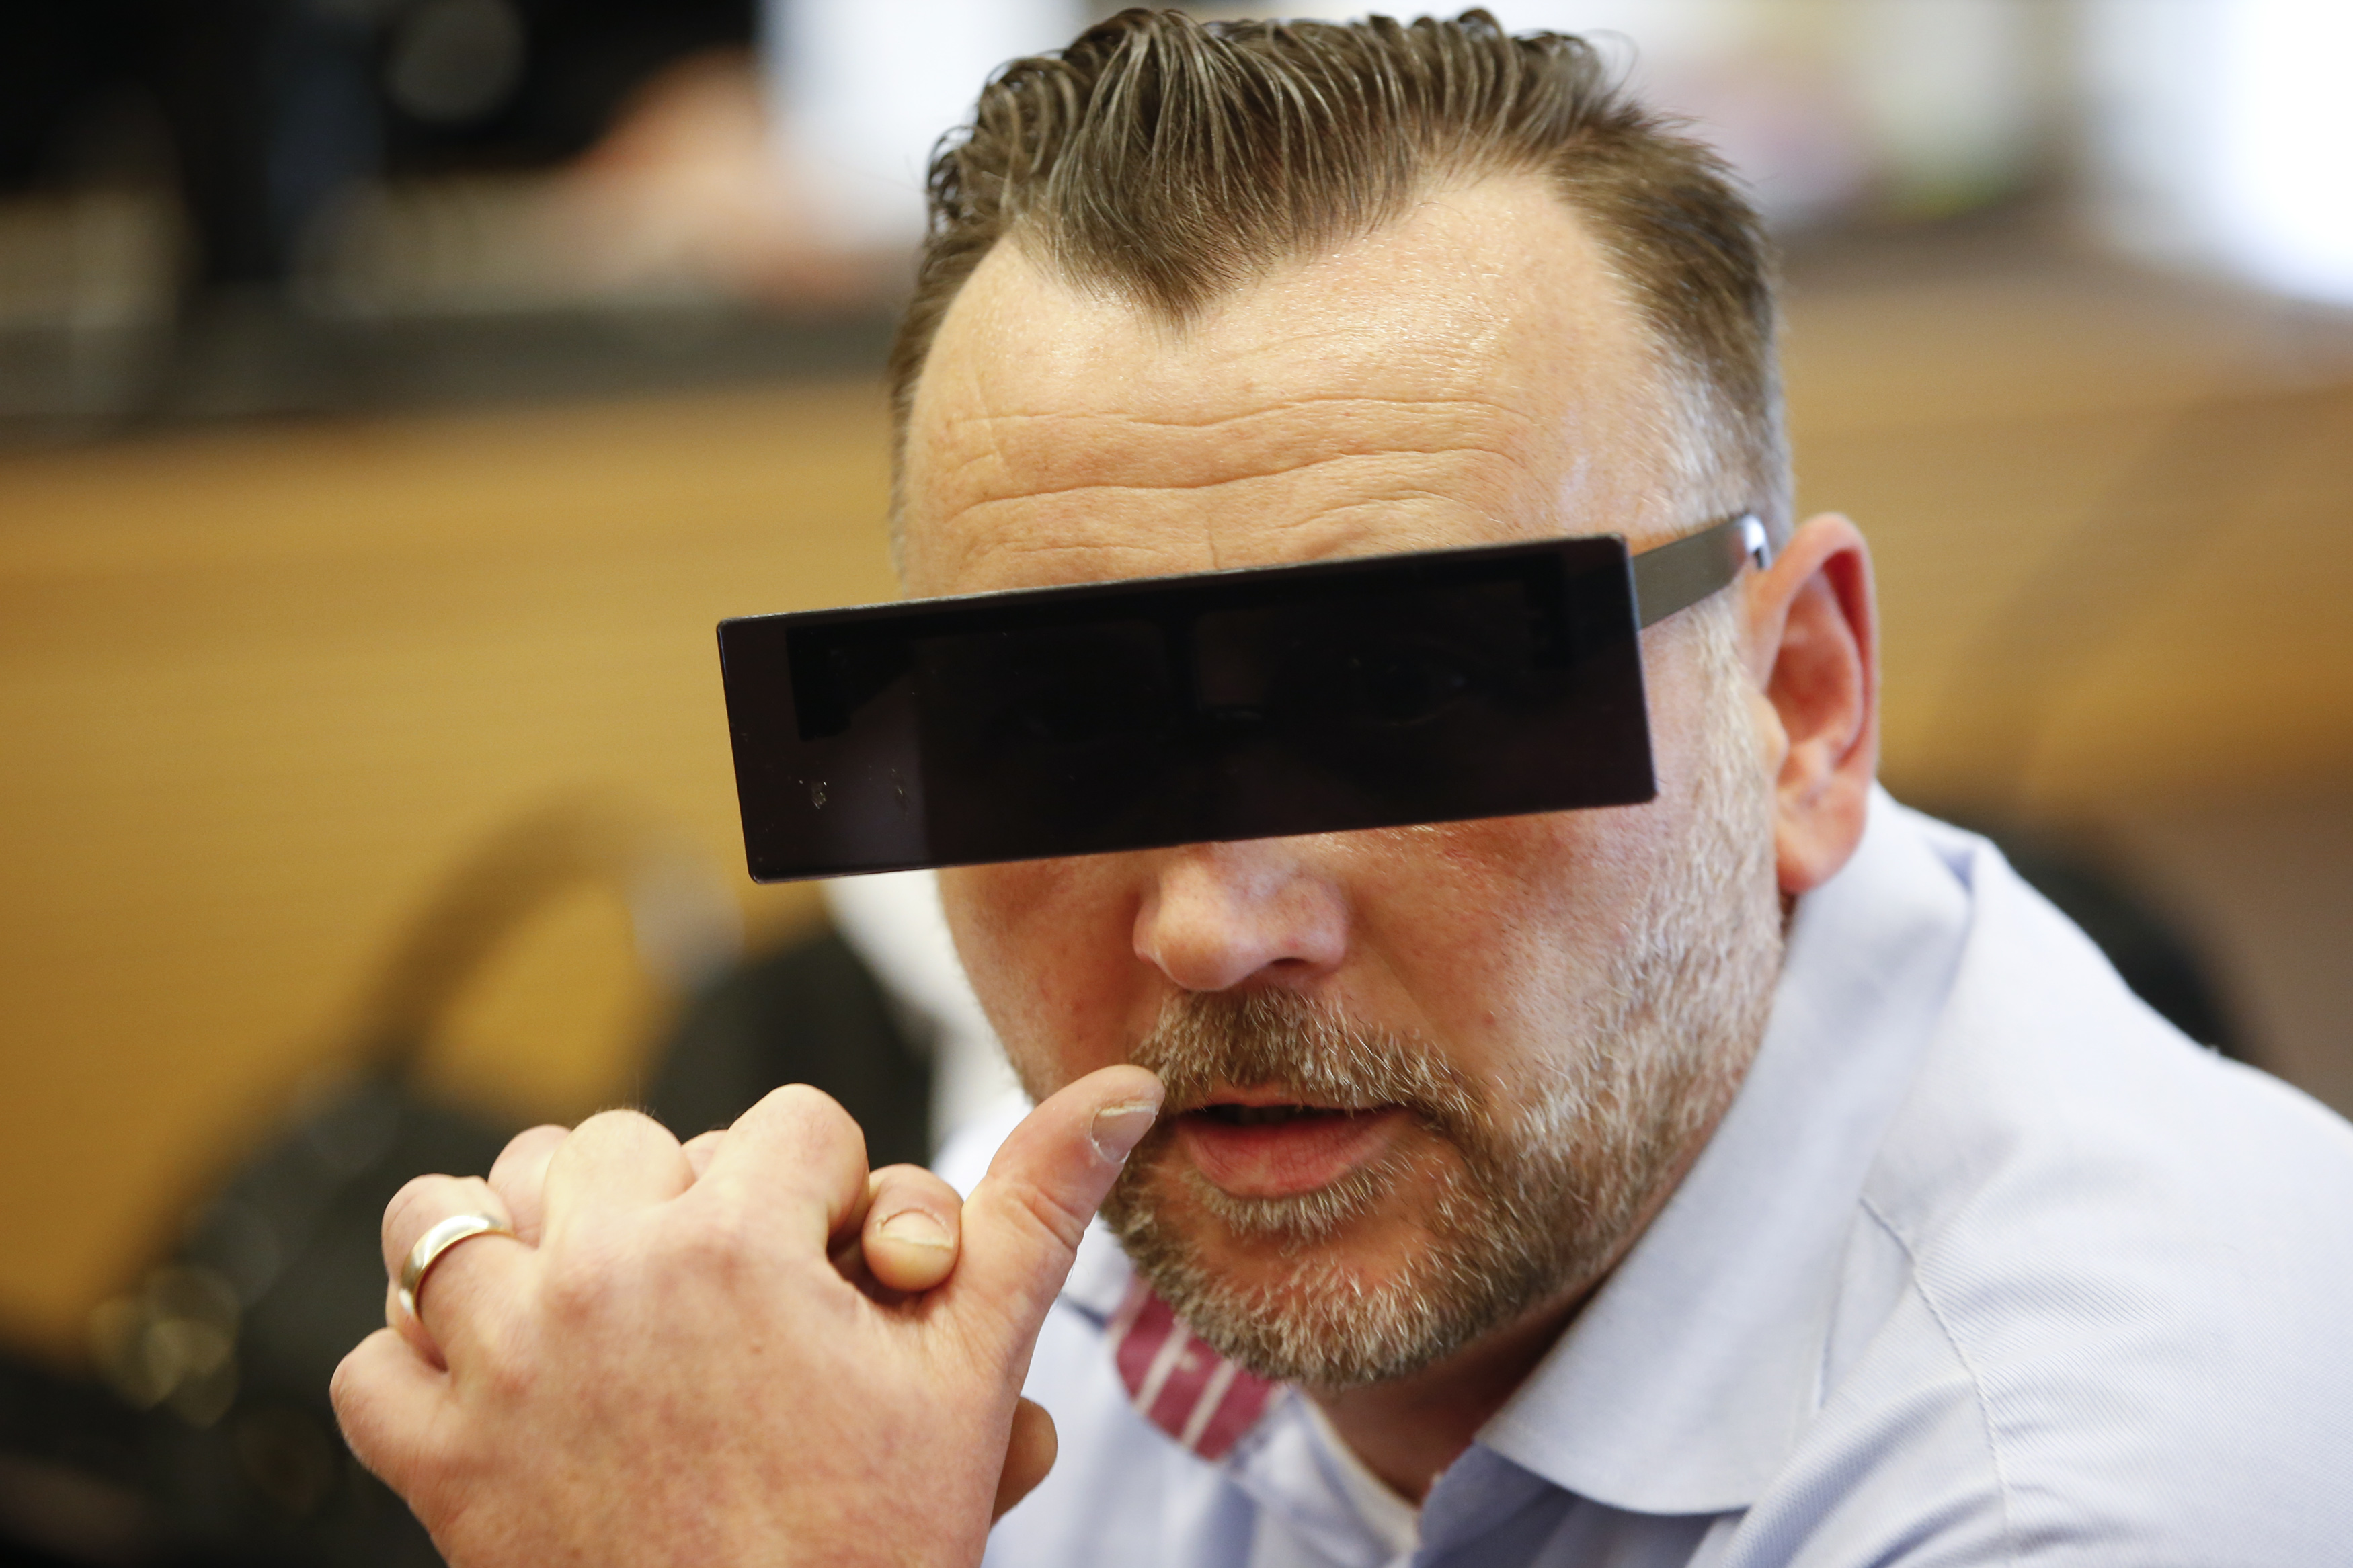 Lutz Bachmann, co-founder of Patriotic Europeans Against the Islamisation of the West (PEGIDA), waits in a courtroom for his trial to be charged with incitement over Facebook posts in a court in Dresden, Germany, April 19, 2016.